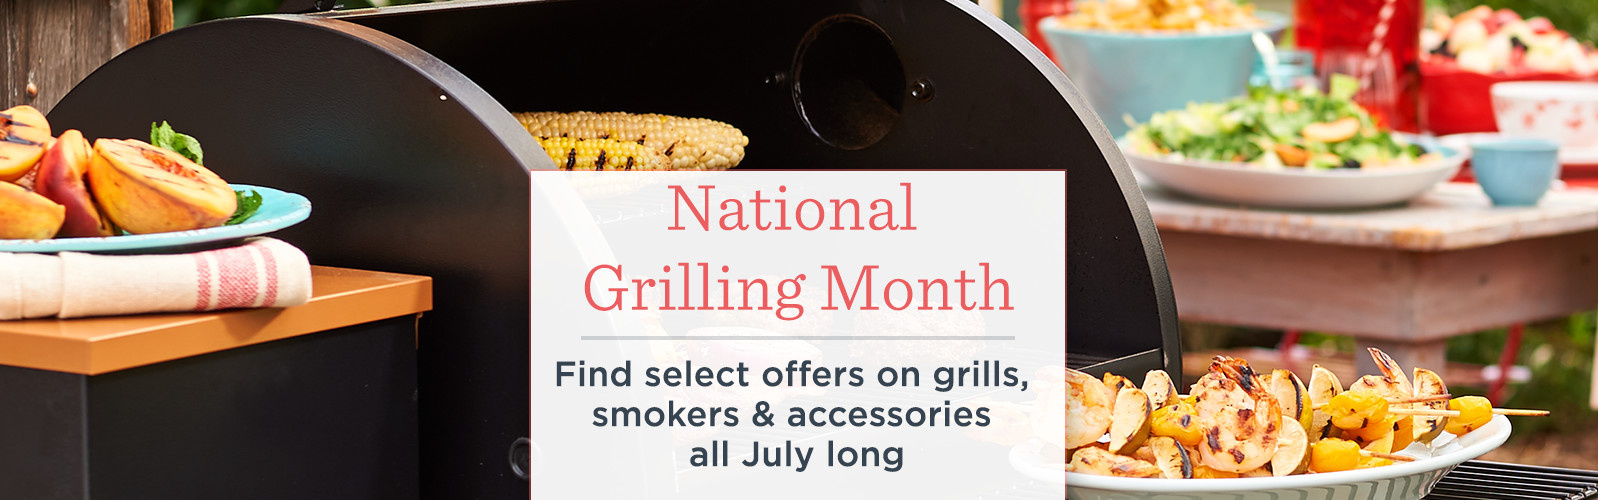 National Grilling Month  Find select offers on grills, smokers & accessories all July long